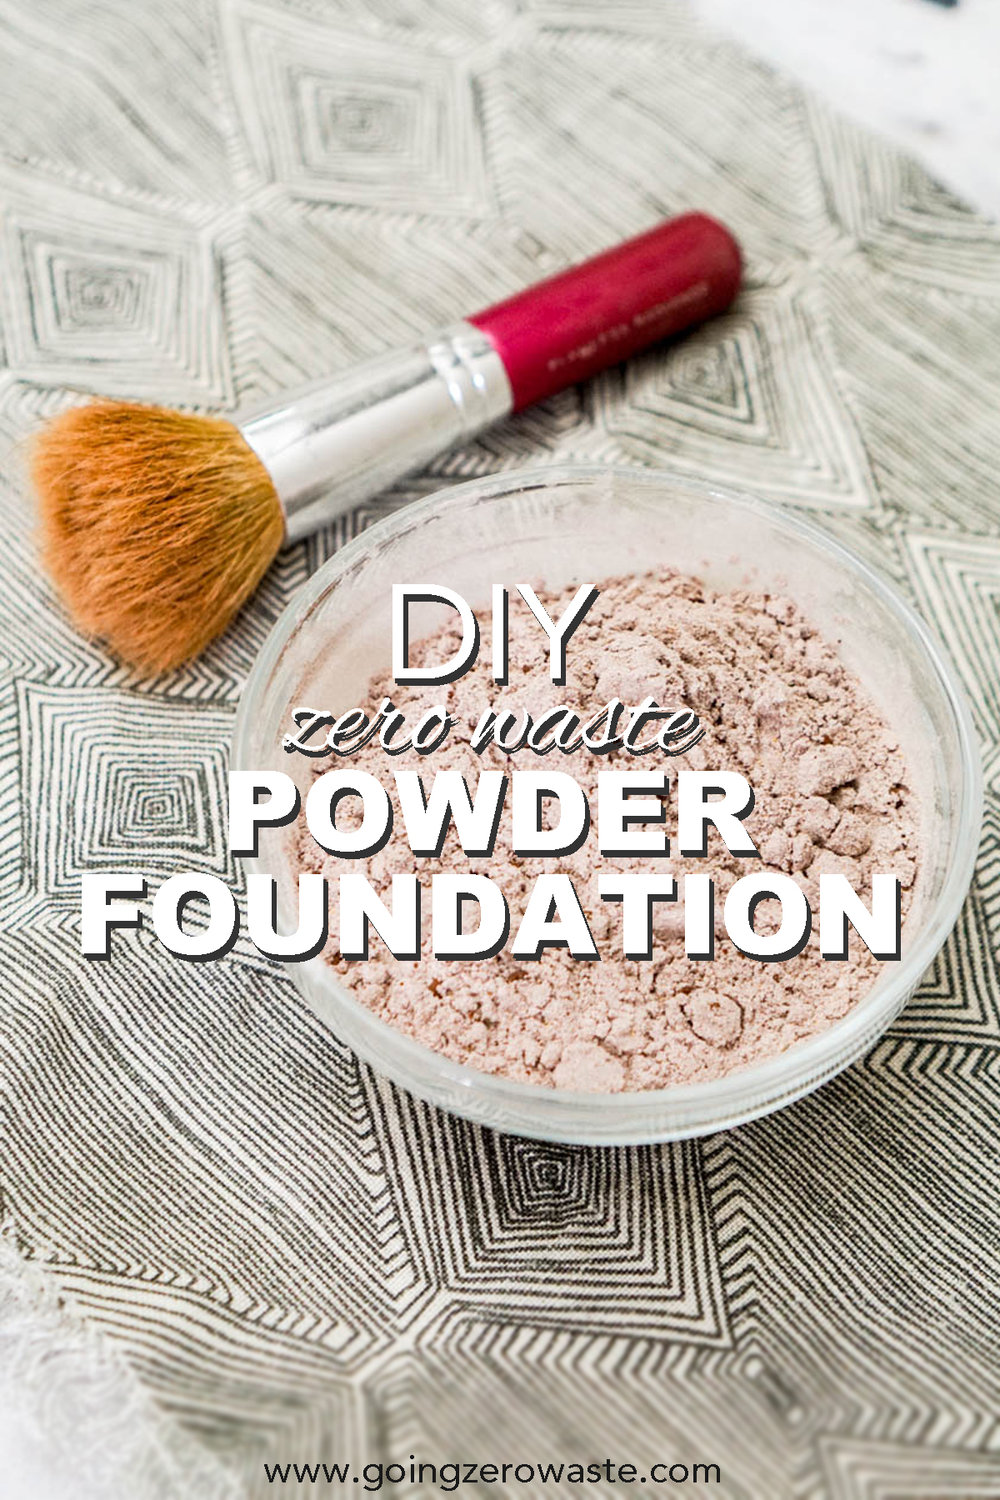 DIY, Zero Waste Powder Foundation - Going Zero Waste -   18 beauty Hacks foundation ideas